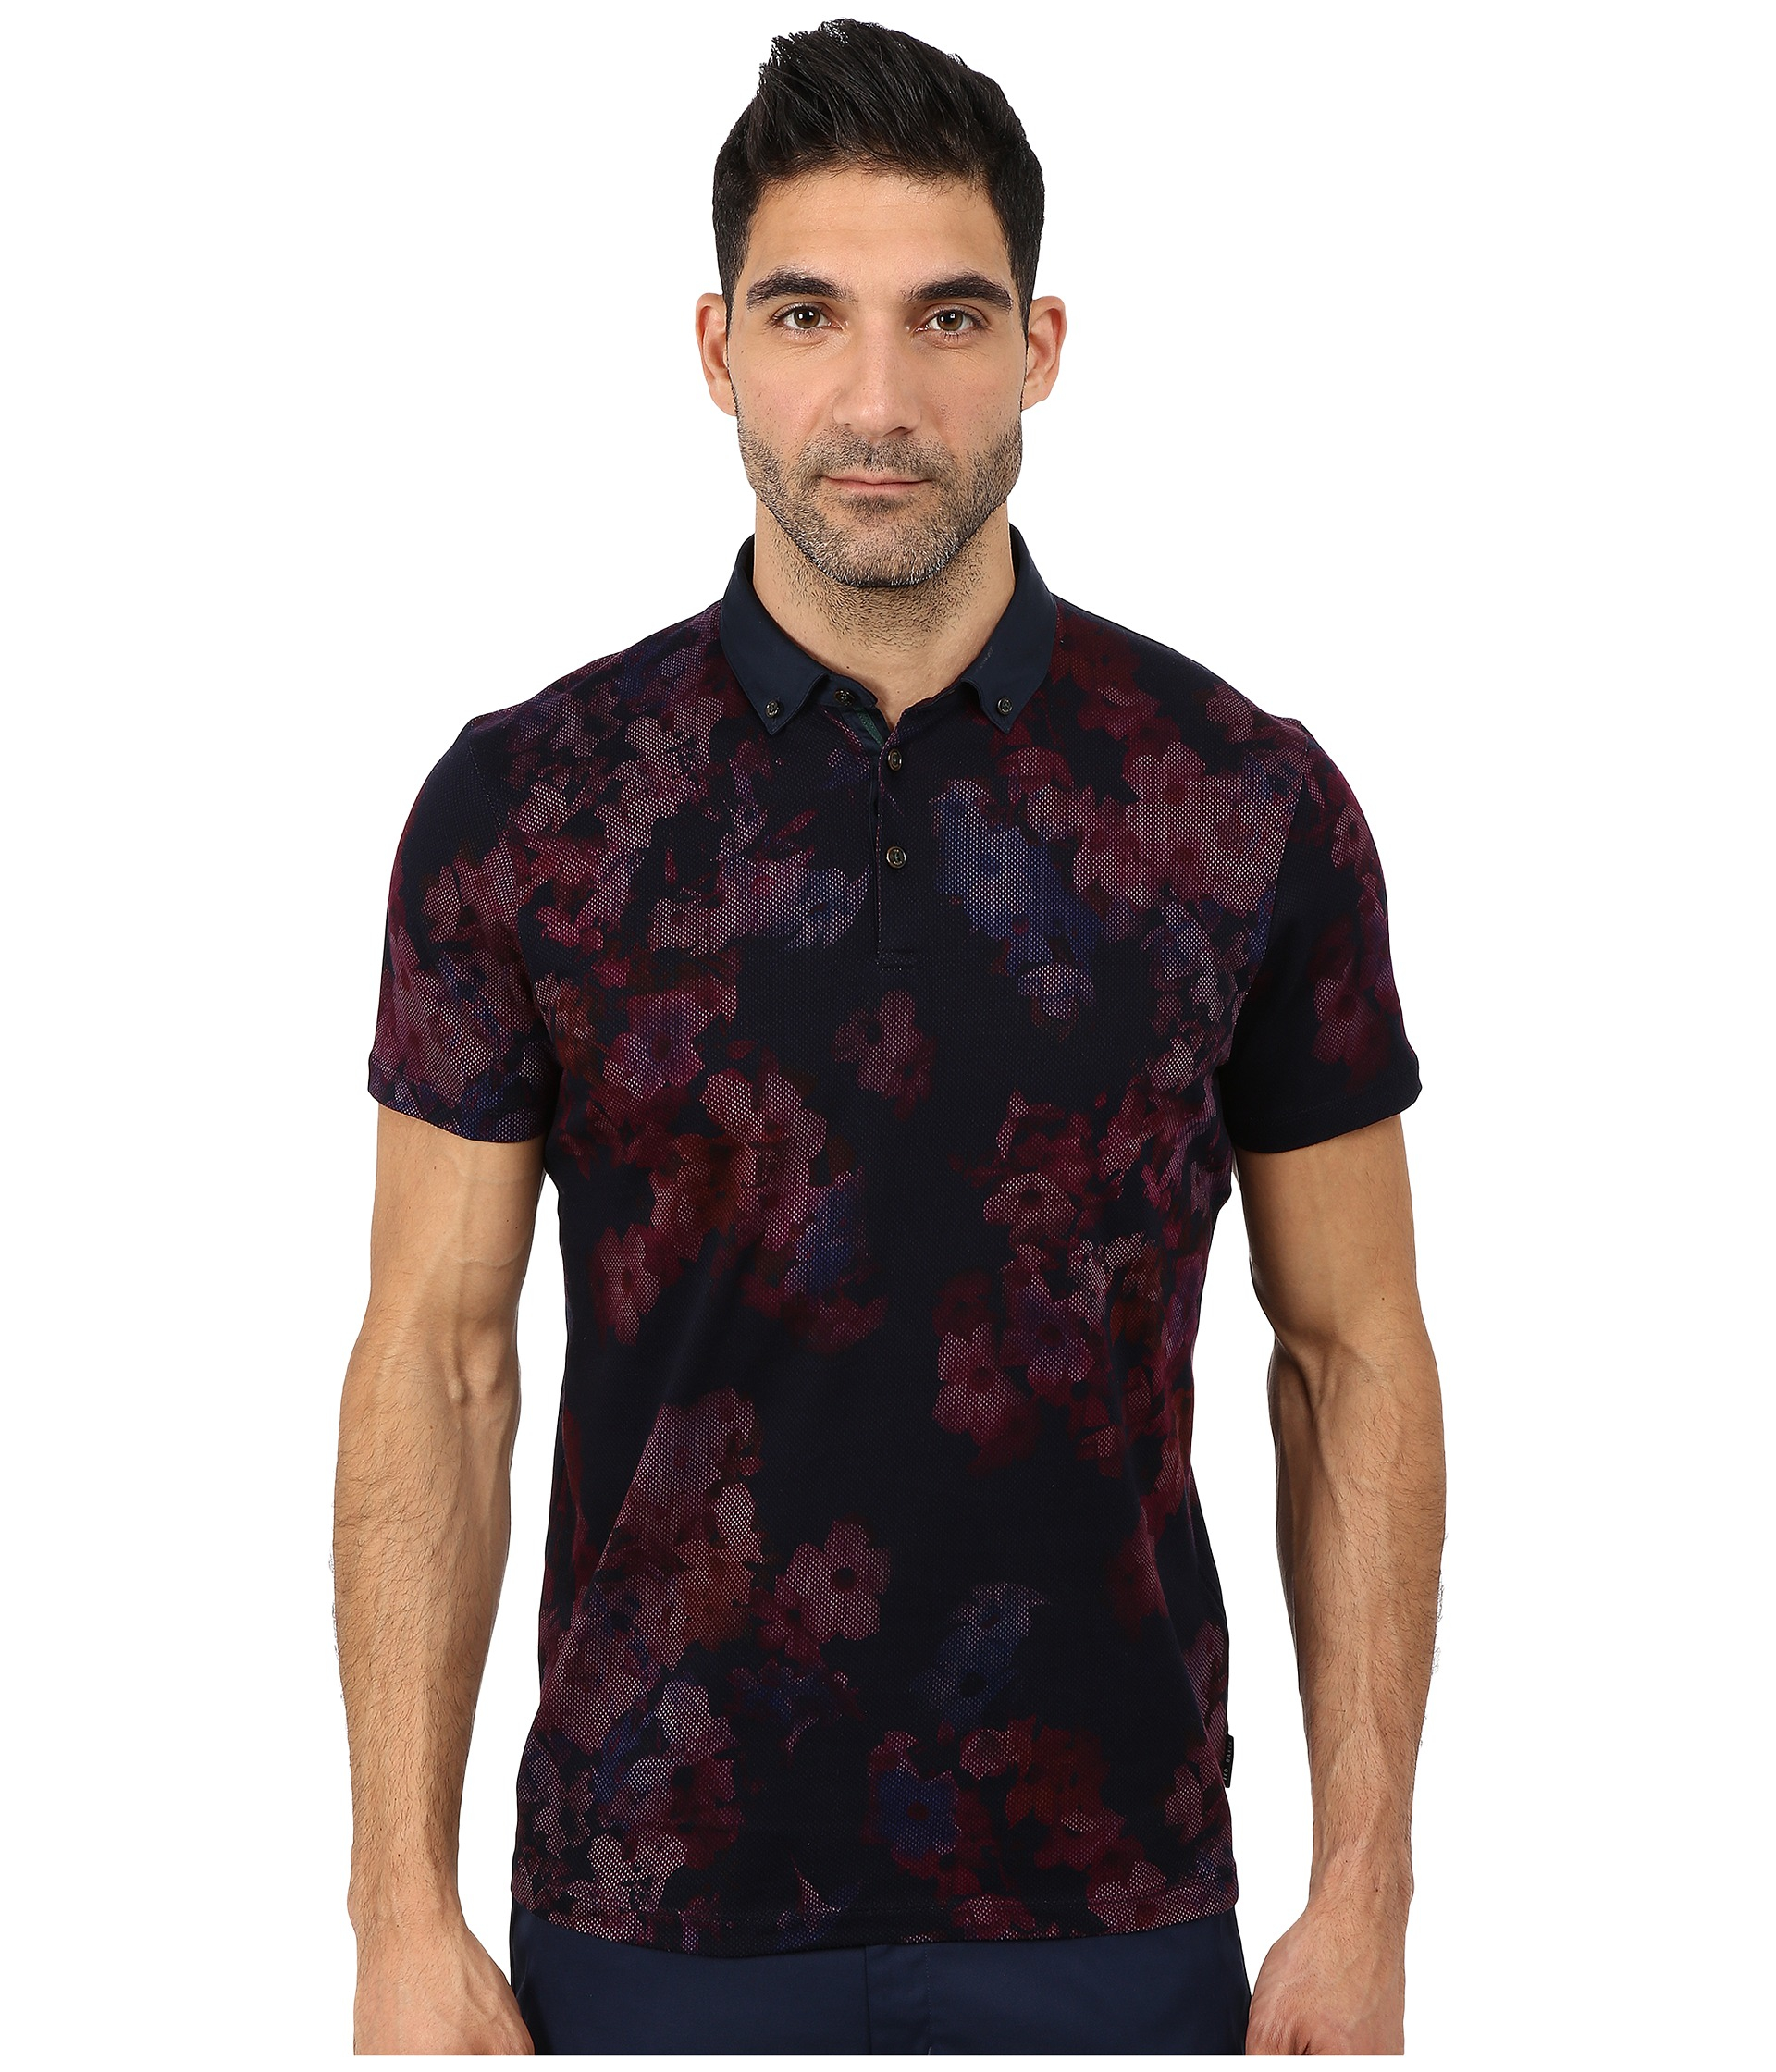 a3951a1b6484ca Lyst - Ted Baker Perpool Digital Floral Printed Short Sleeve Polo in ...